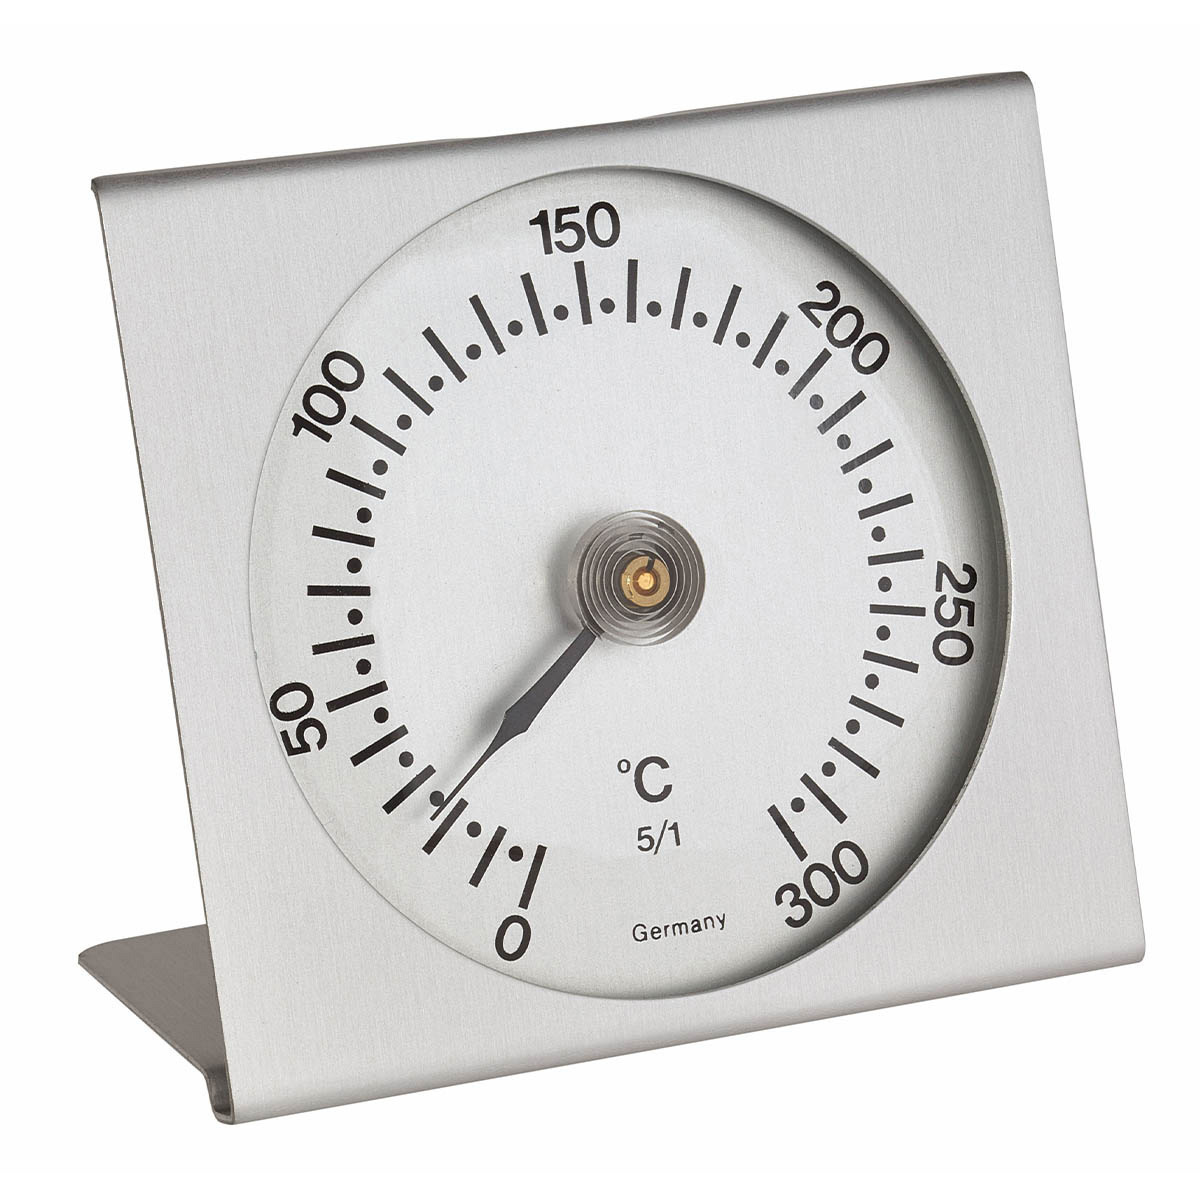 14-1004-60-analoges-backofenthermometer-metall-1200x1200px.jpg